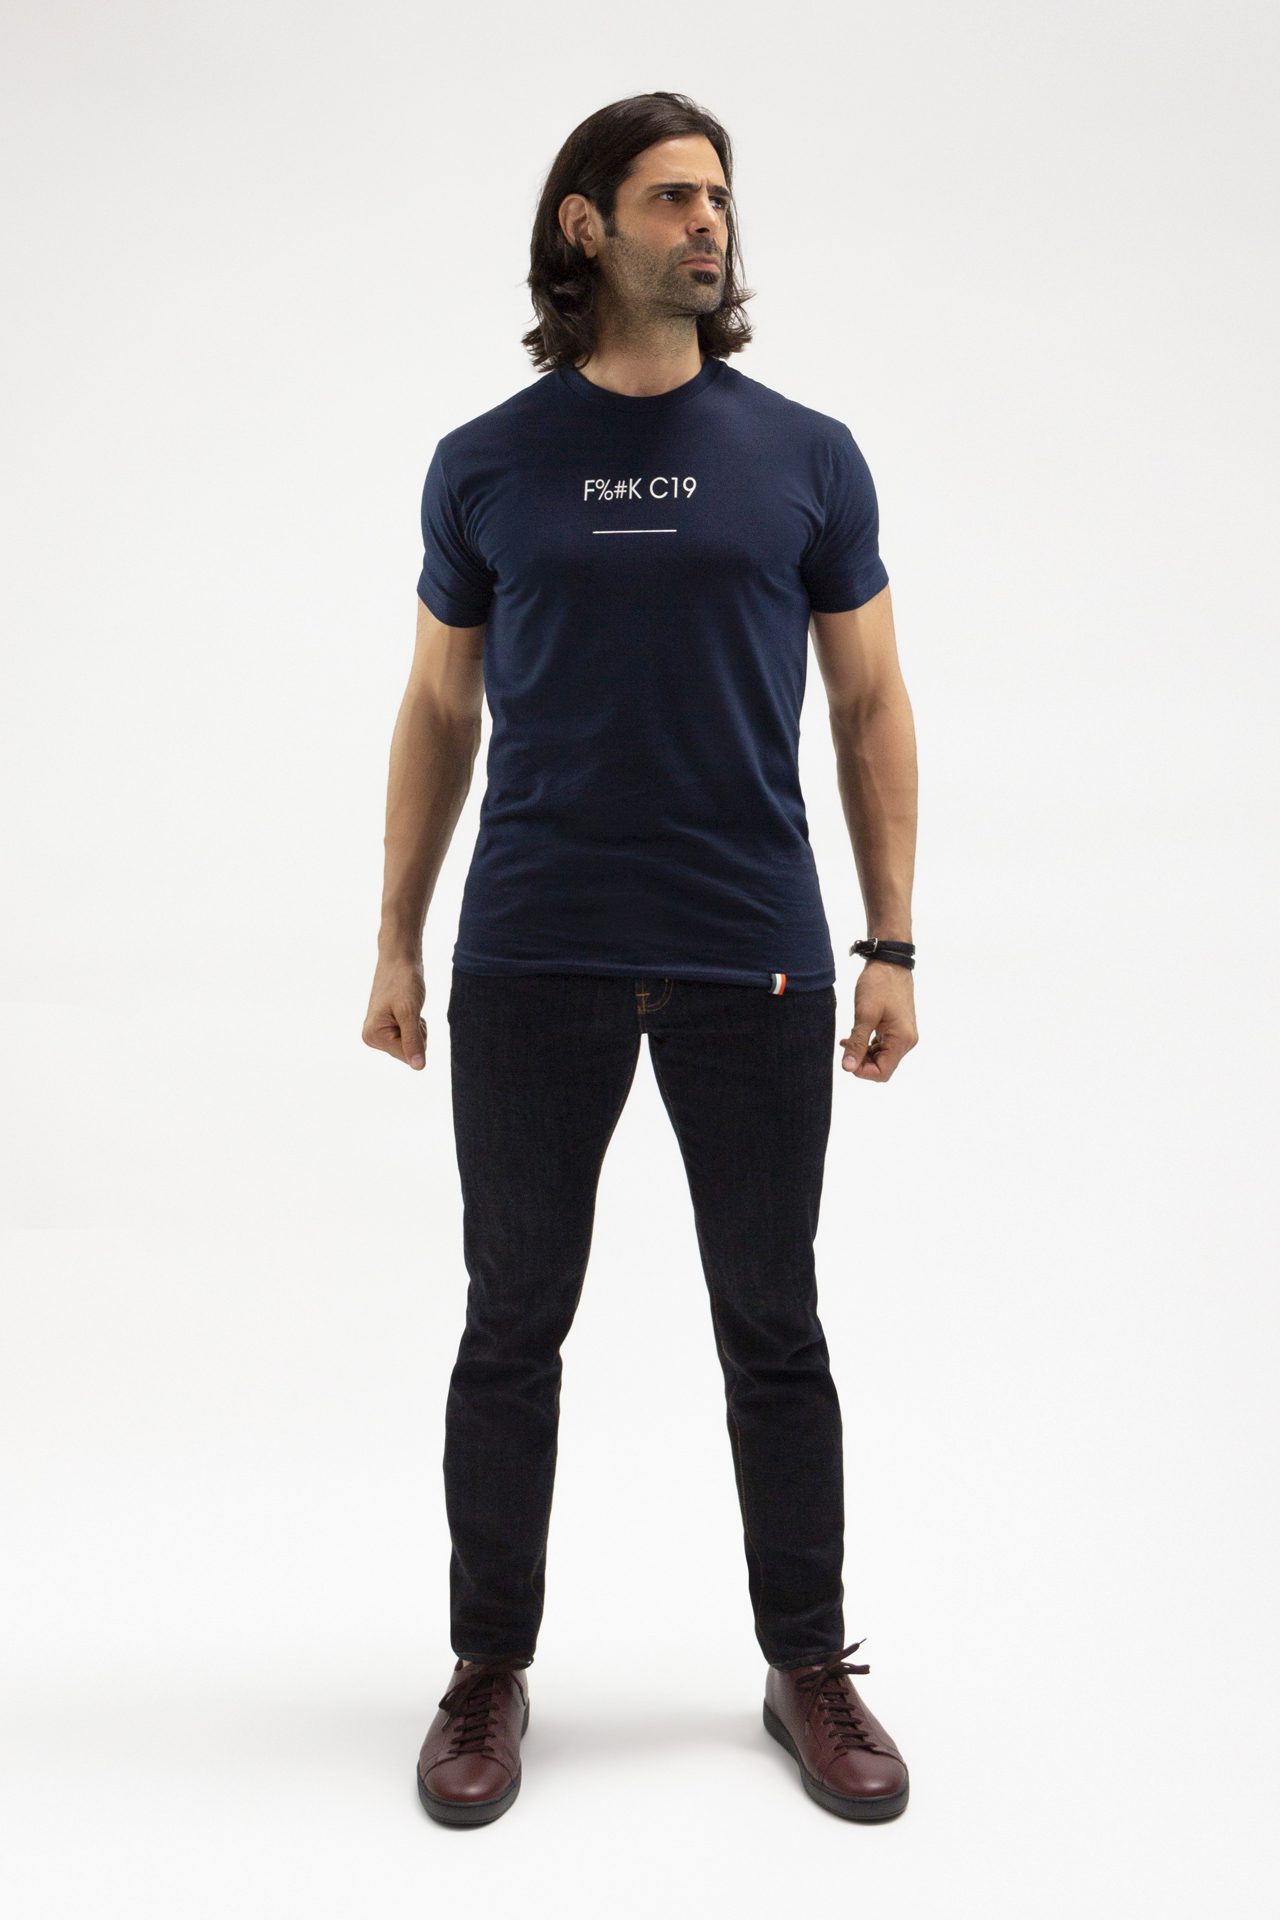 F%#K C19 T-shirt in Navy